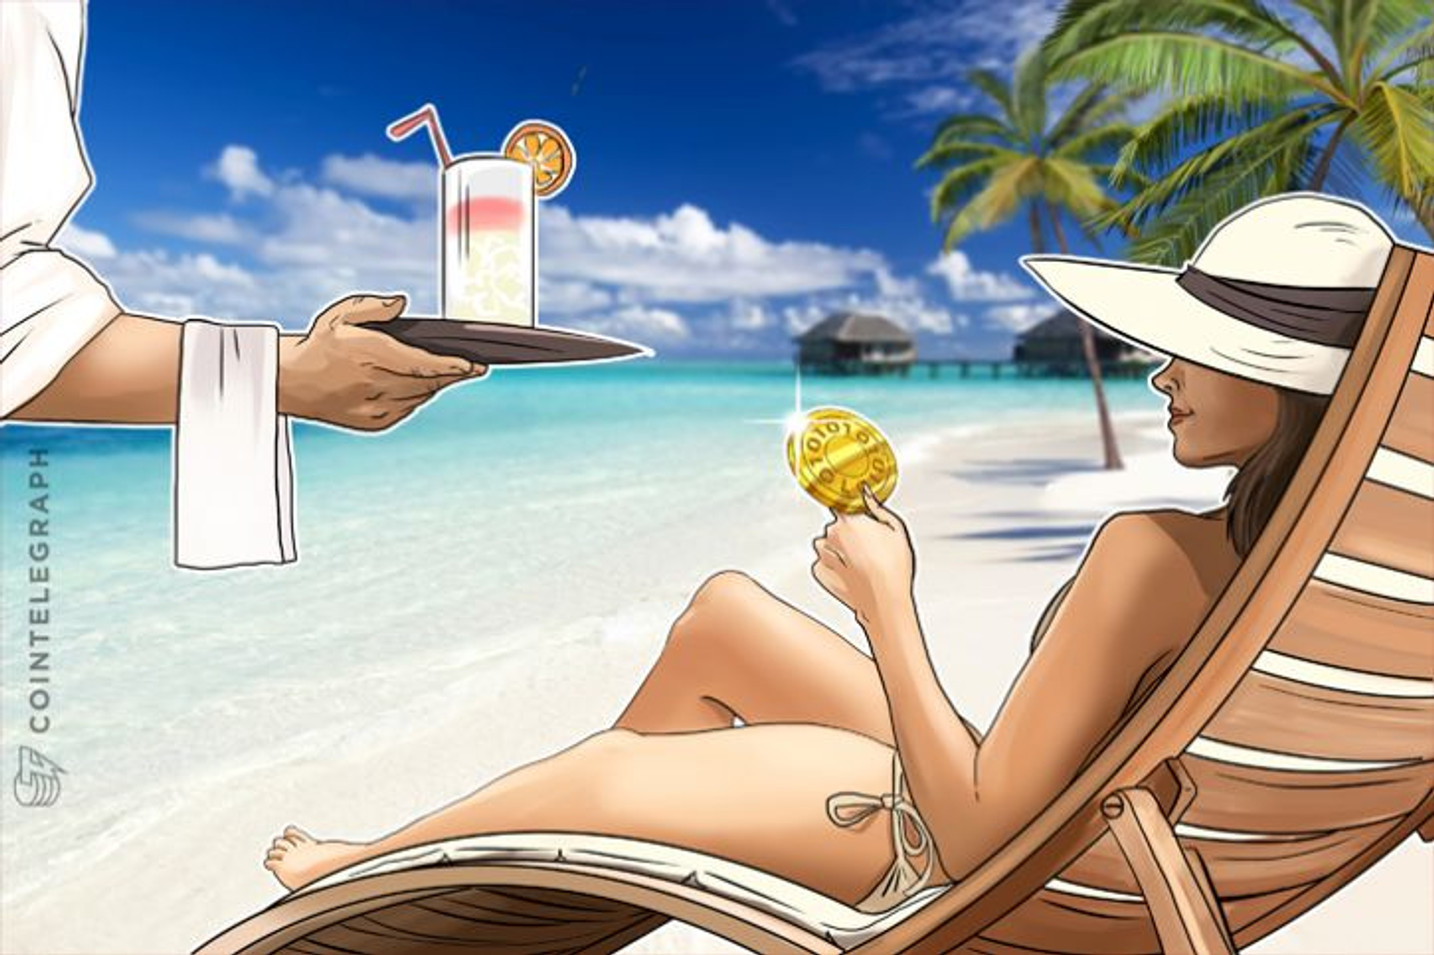 Blockchain Technology to Transform Tourism Industry, Says Russian Tourism Official